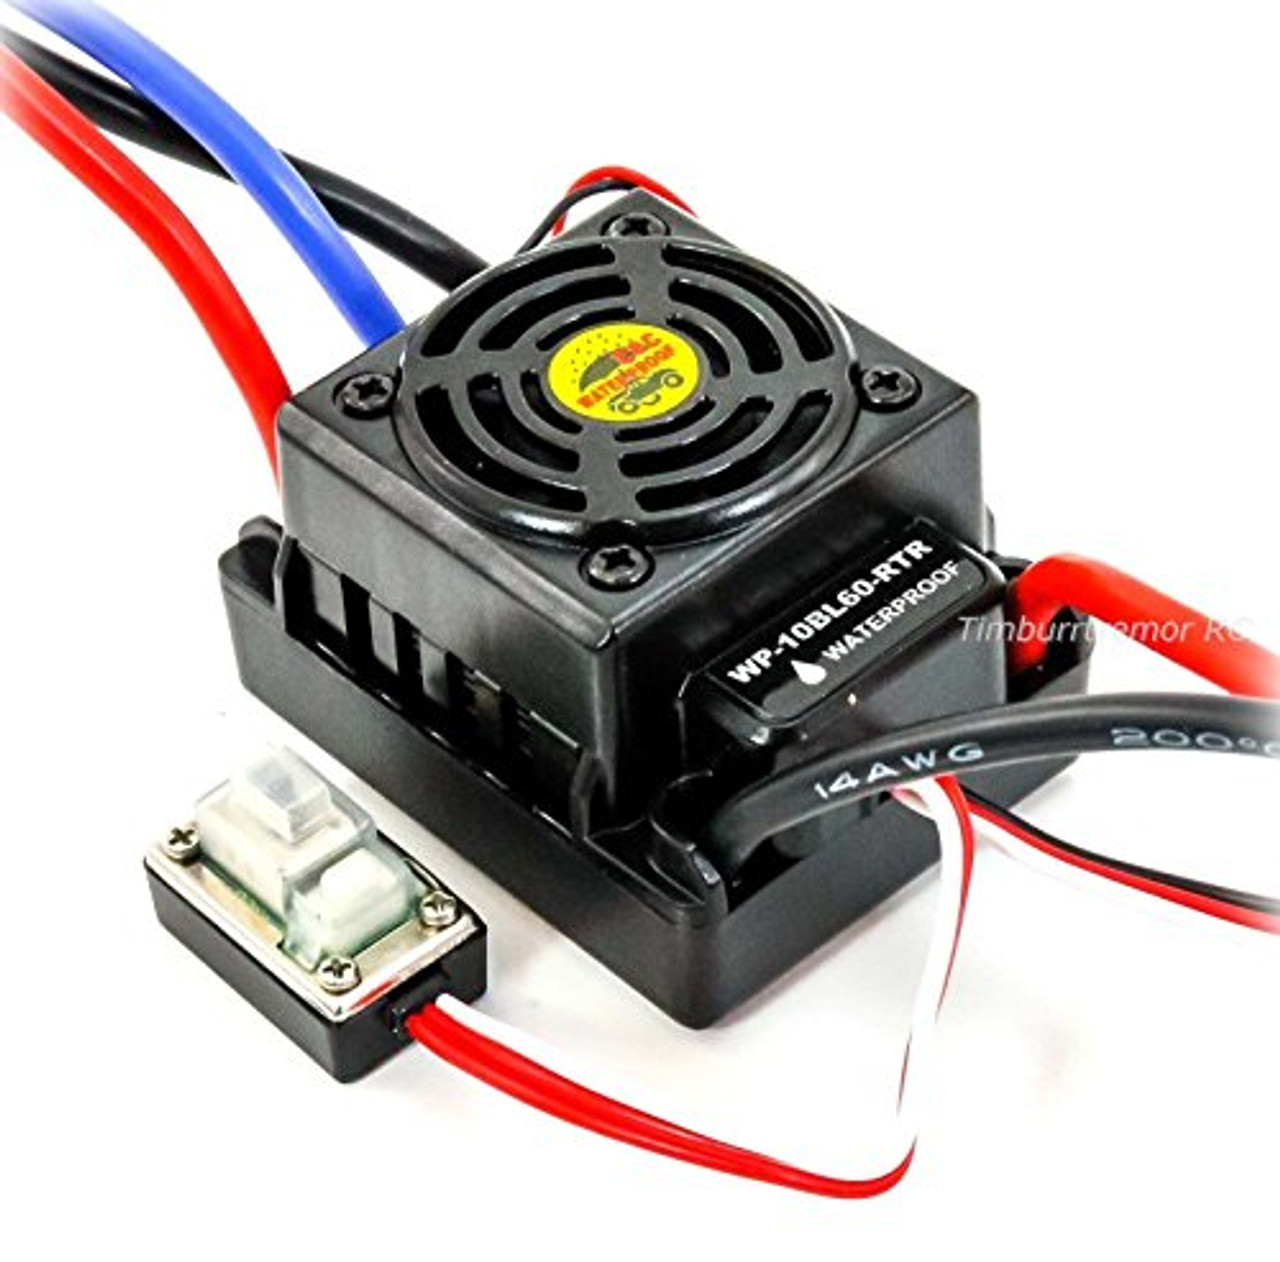 hobbywing 60a waterproof esc brushless for hsp bsd [ 1280 x 1262 Pixel ]